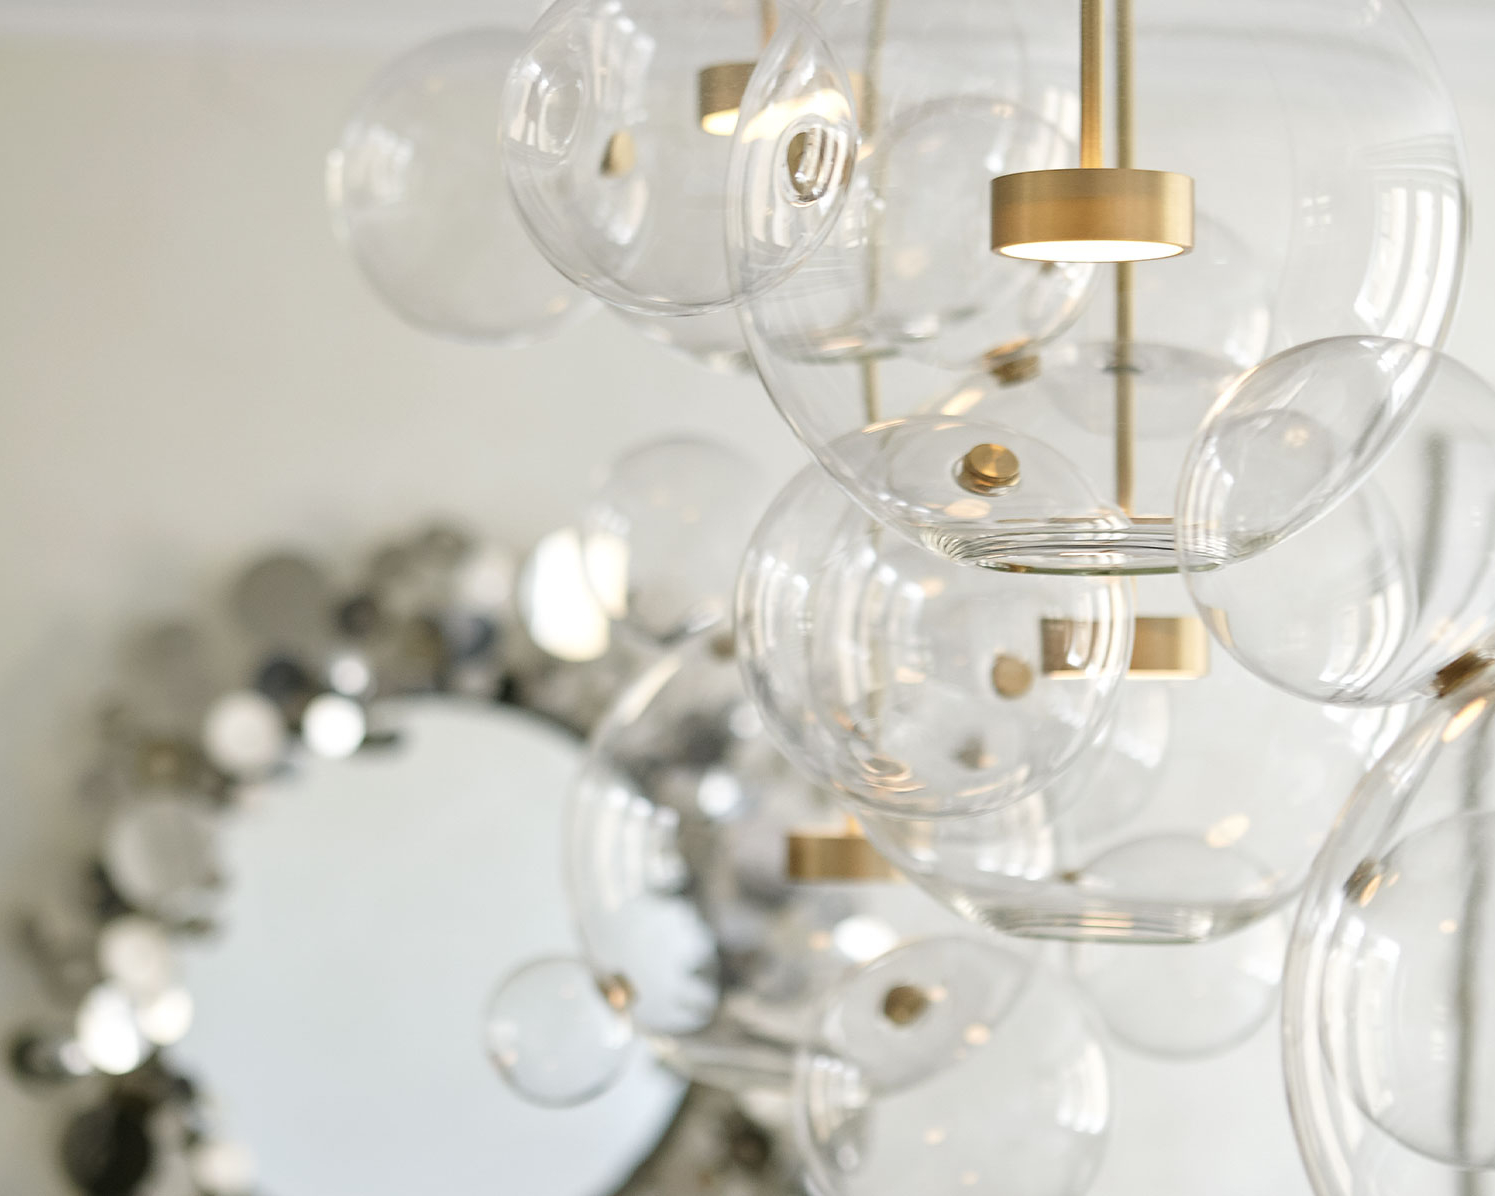 Custom made multi-bubble chandelier in a chic dining room in a NYC interior design project